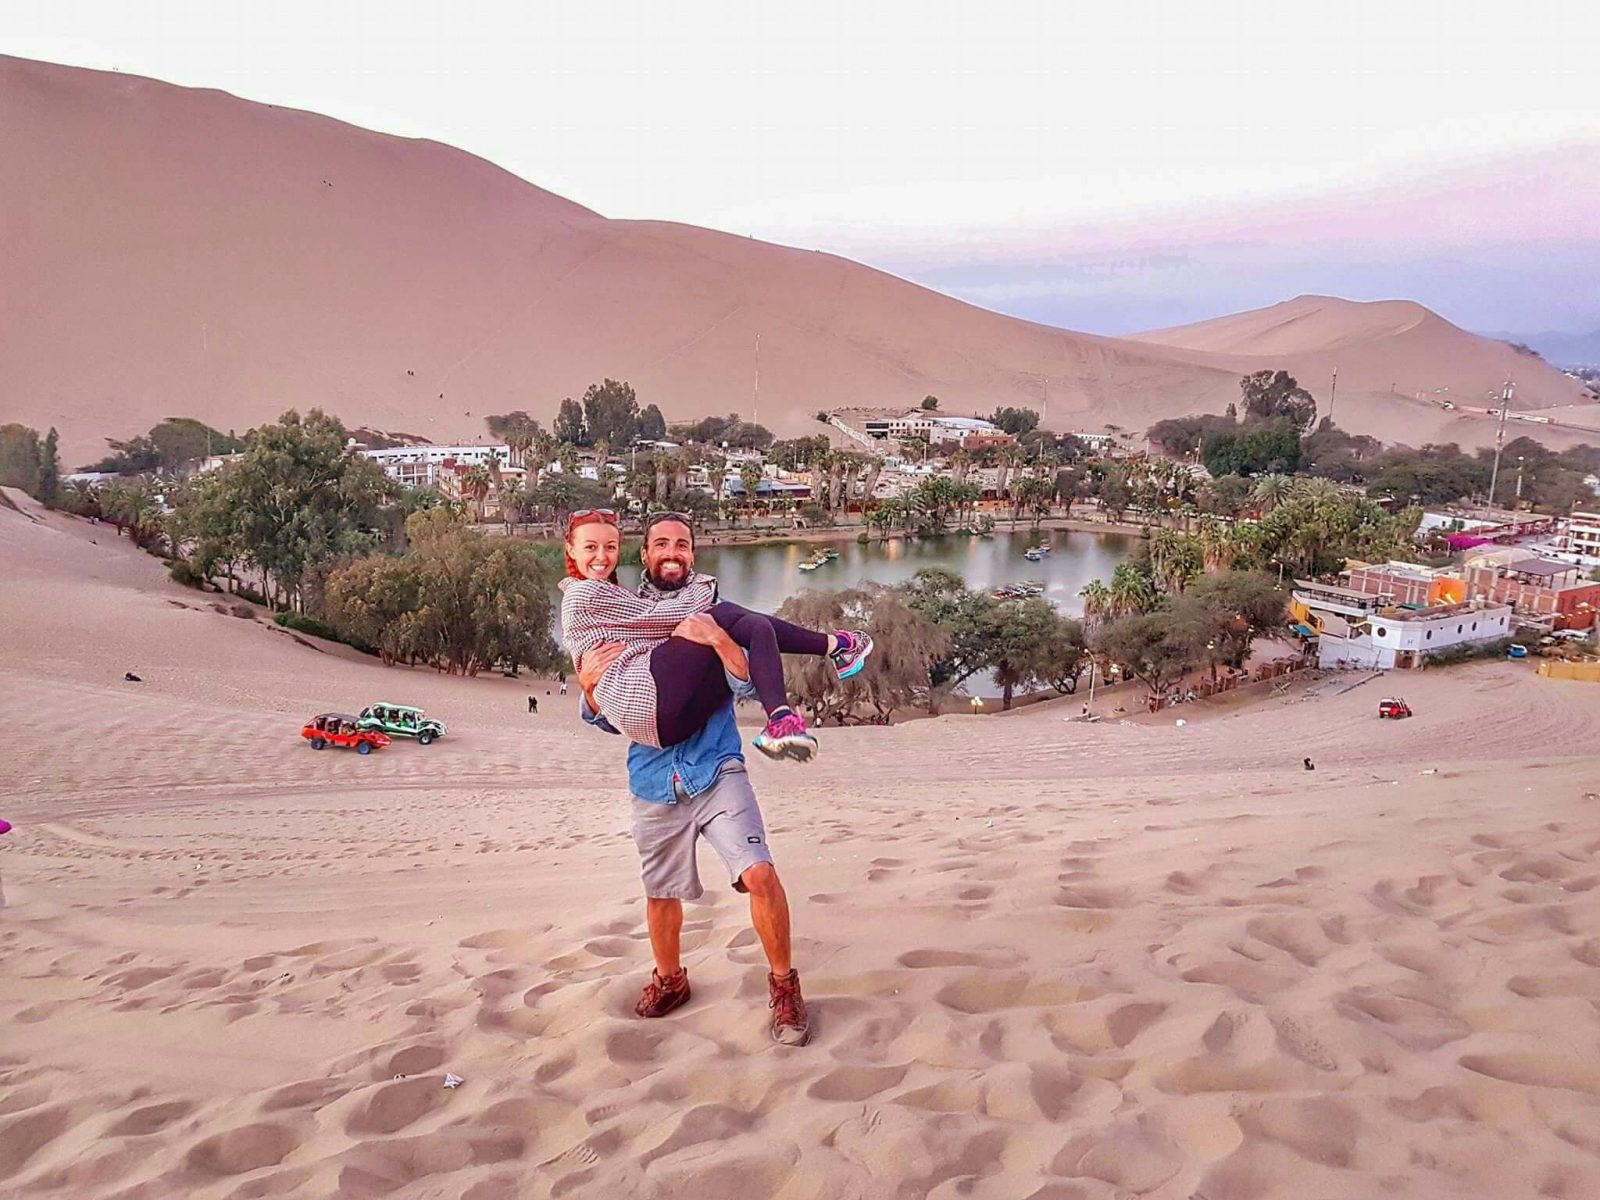 """<img src=""""images/"""" width=""""800"""" height=""""600"""" alt=""""ica - received 10154870737955636 1926543103 - Peru: Sand and Sails, Ica, Huacachina and Paracas"""">"""